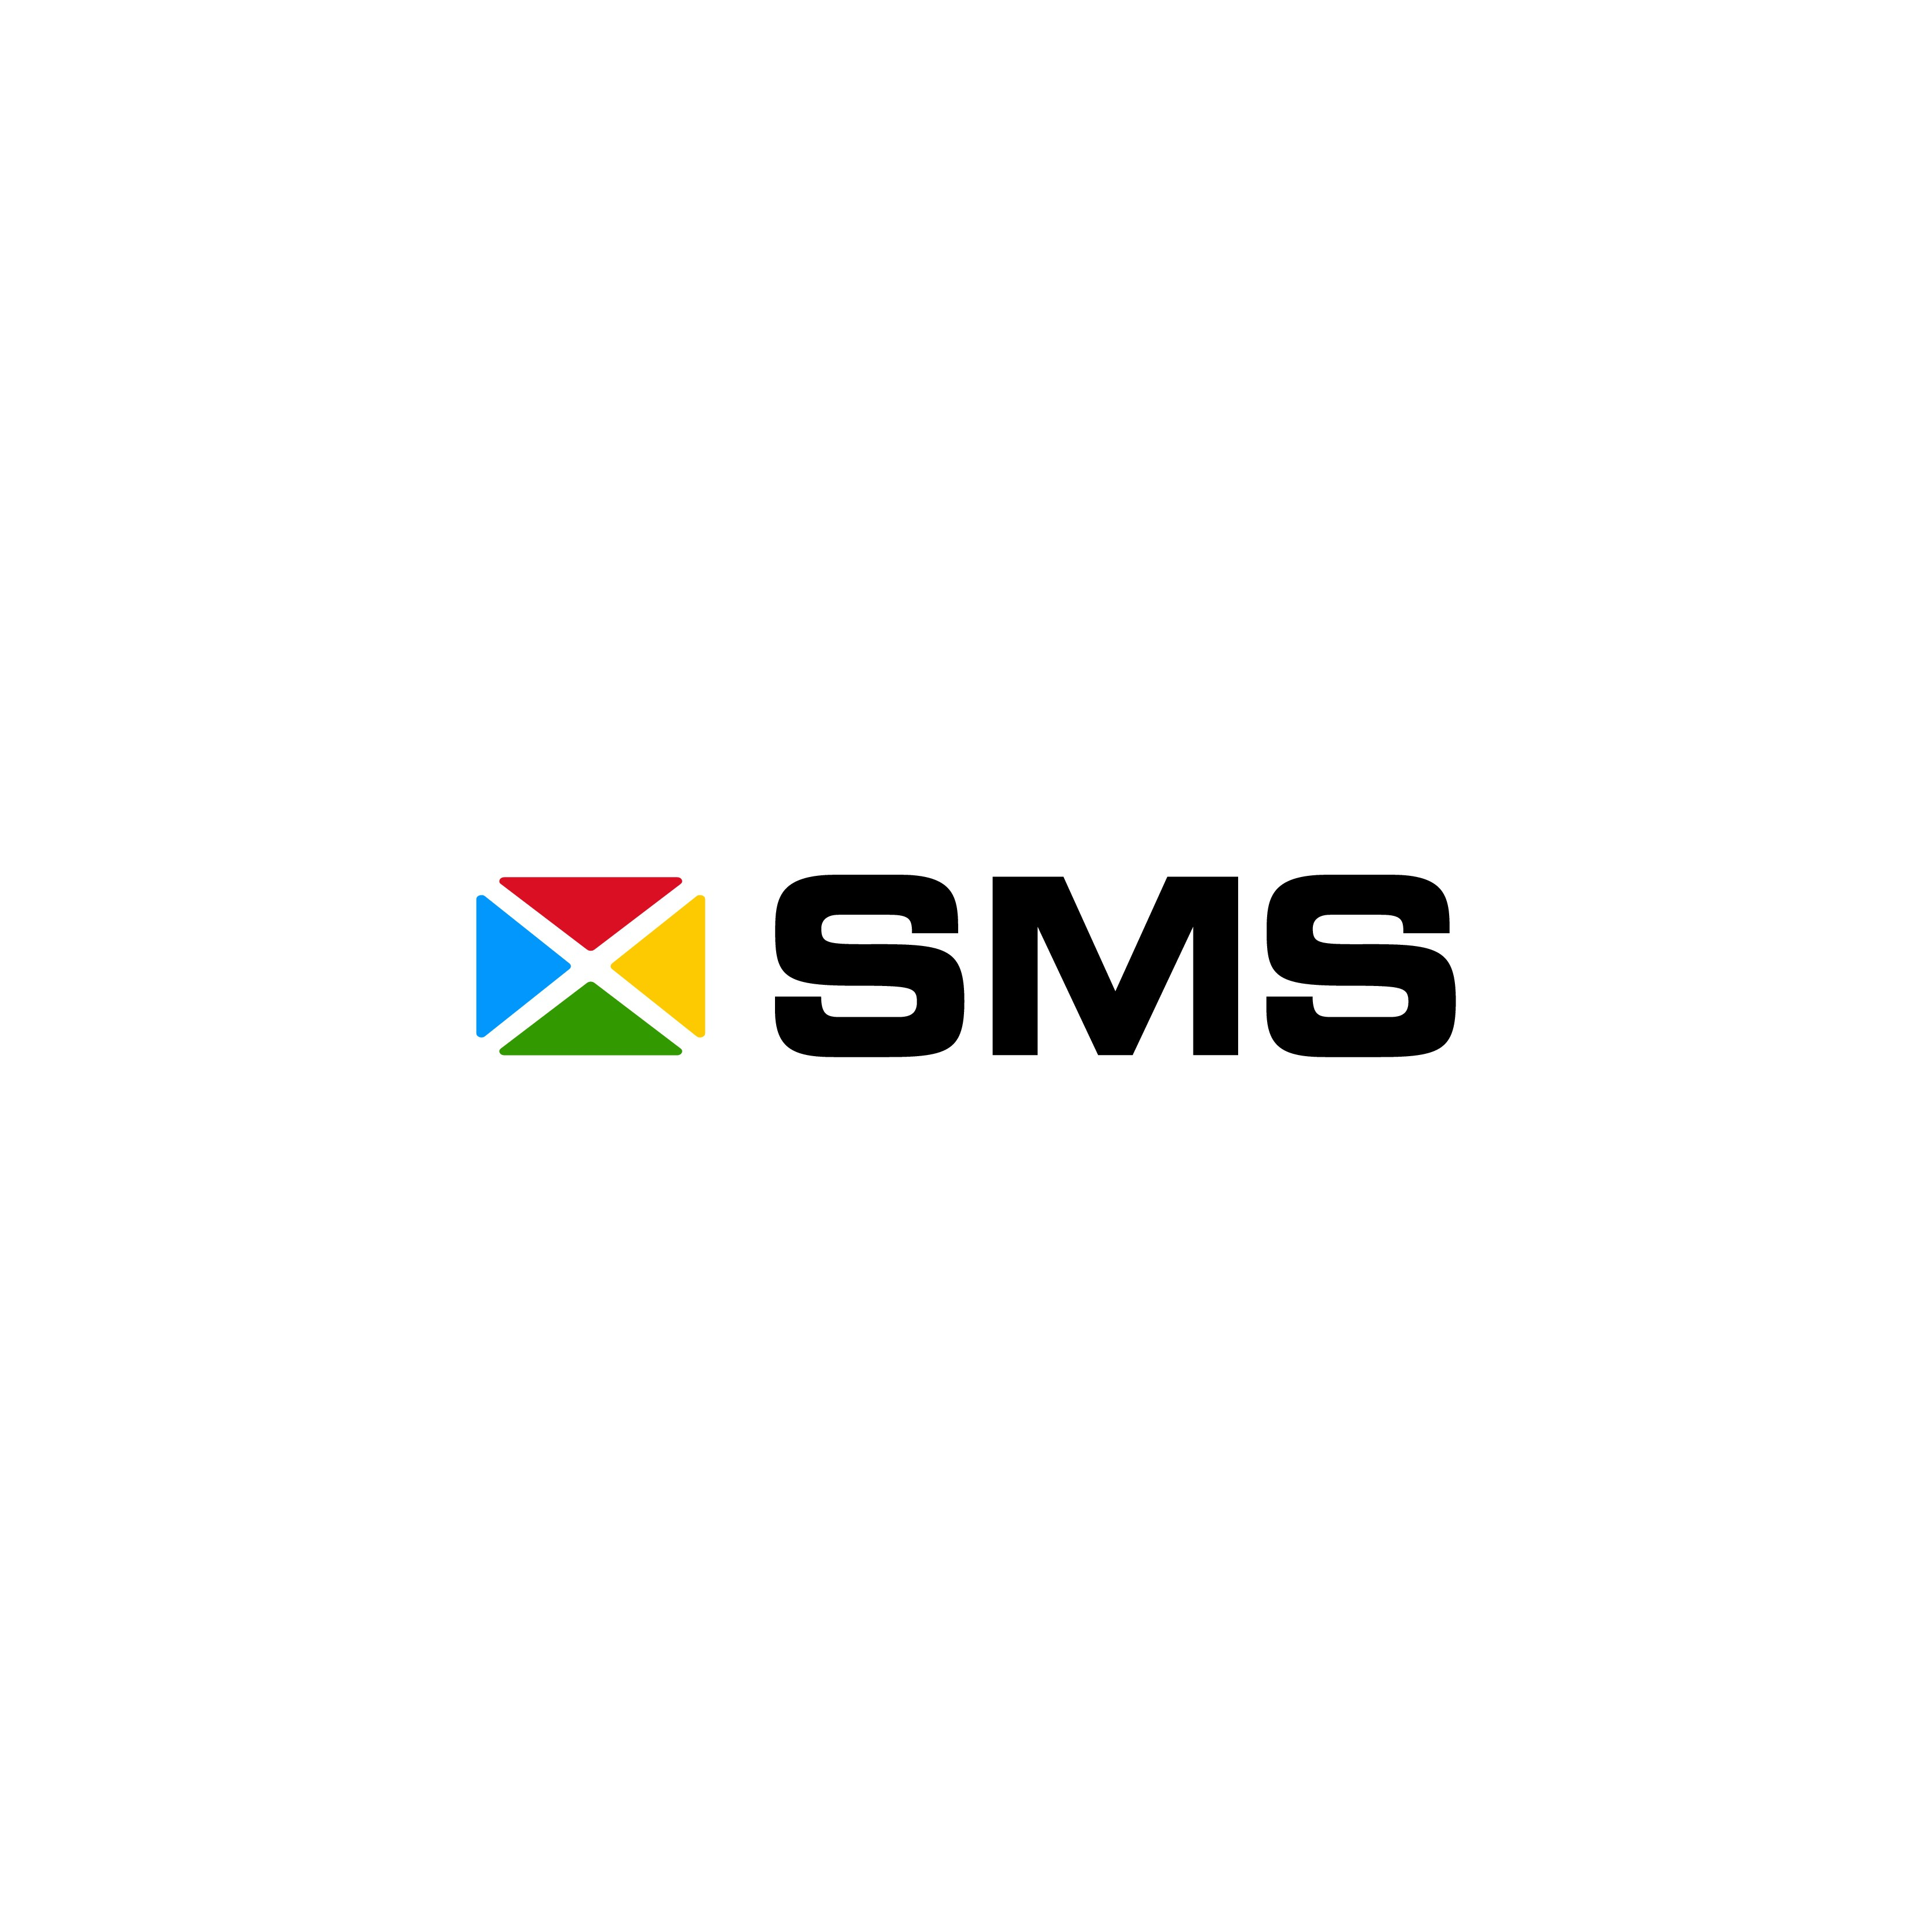 Create professional captivating logo for IT consulting company SMS